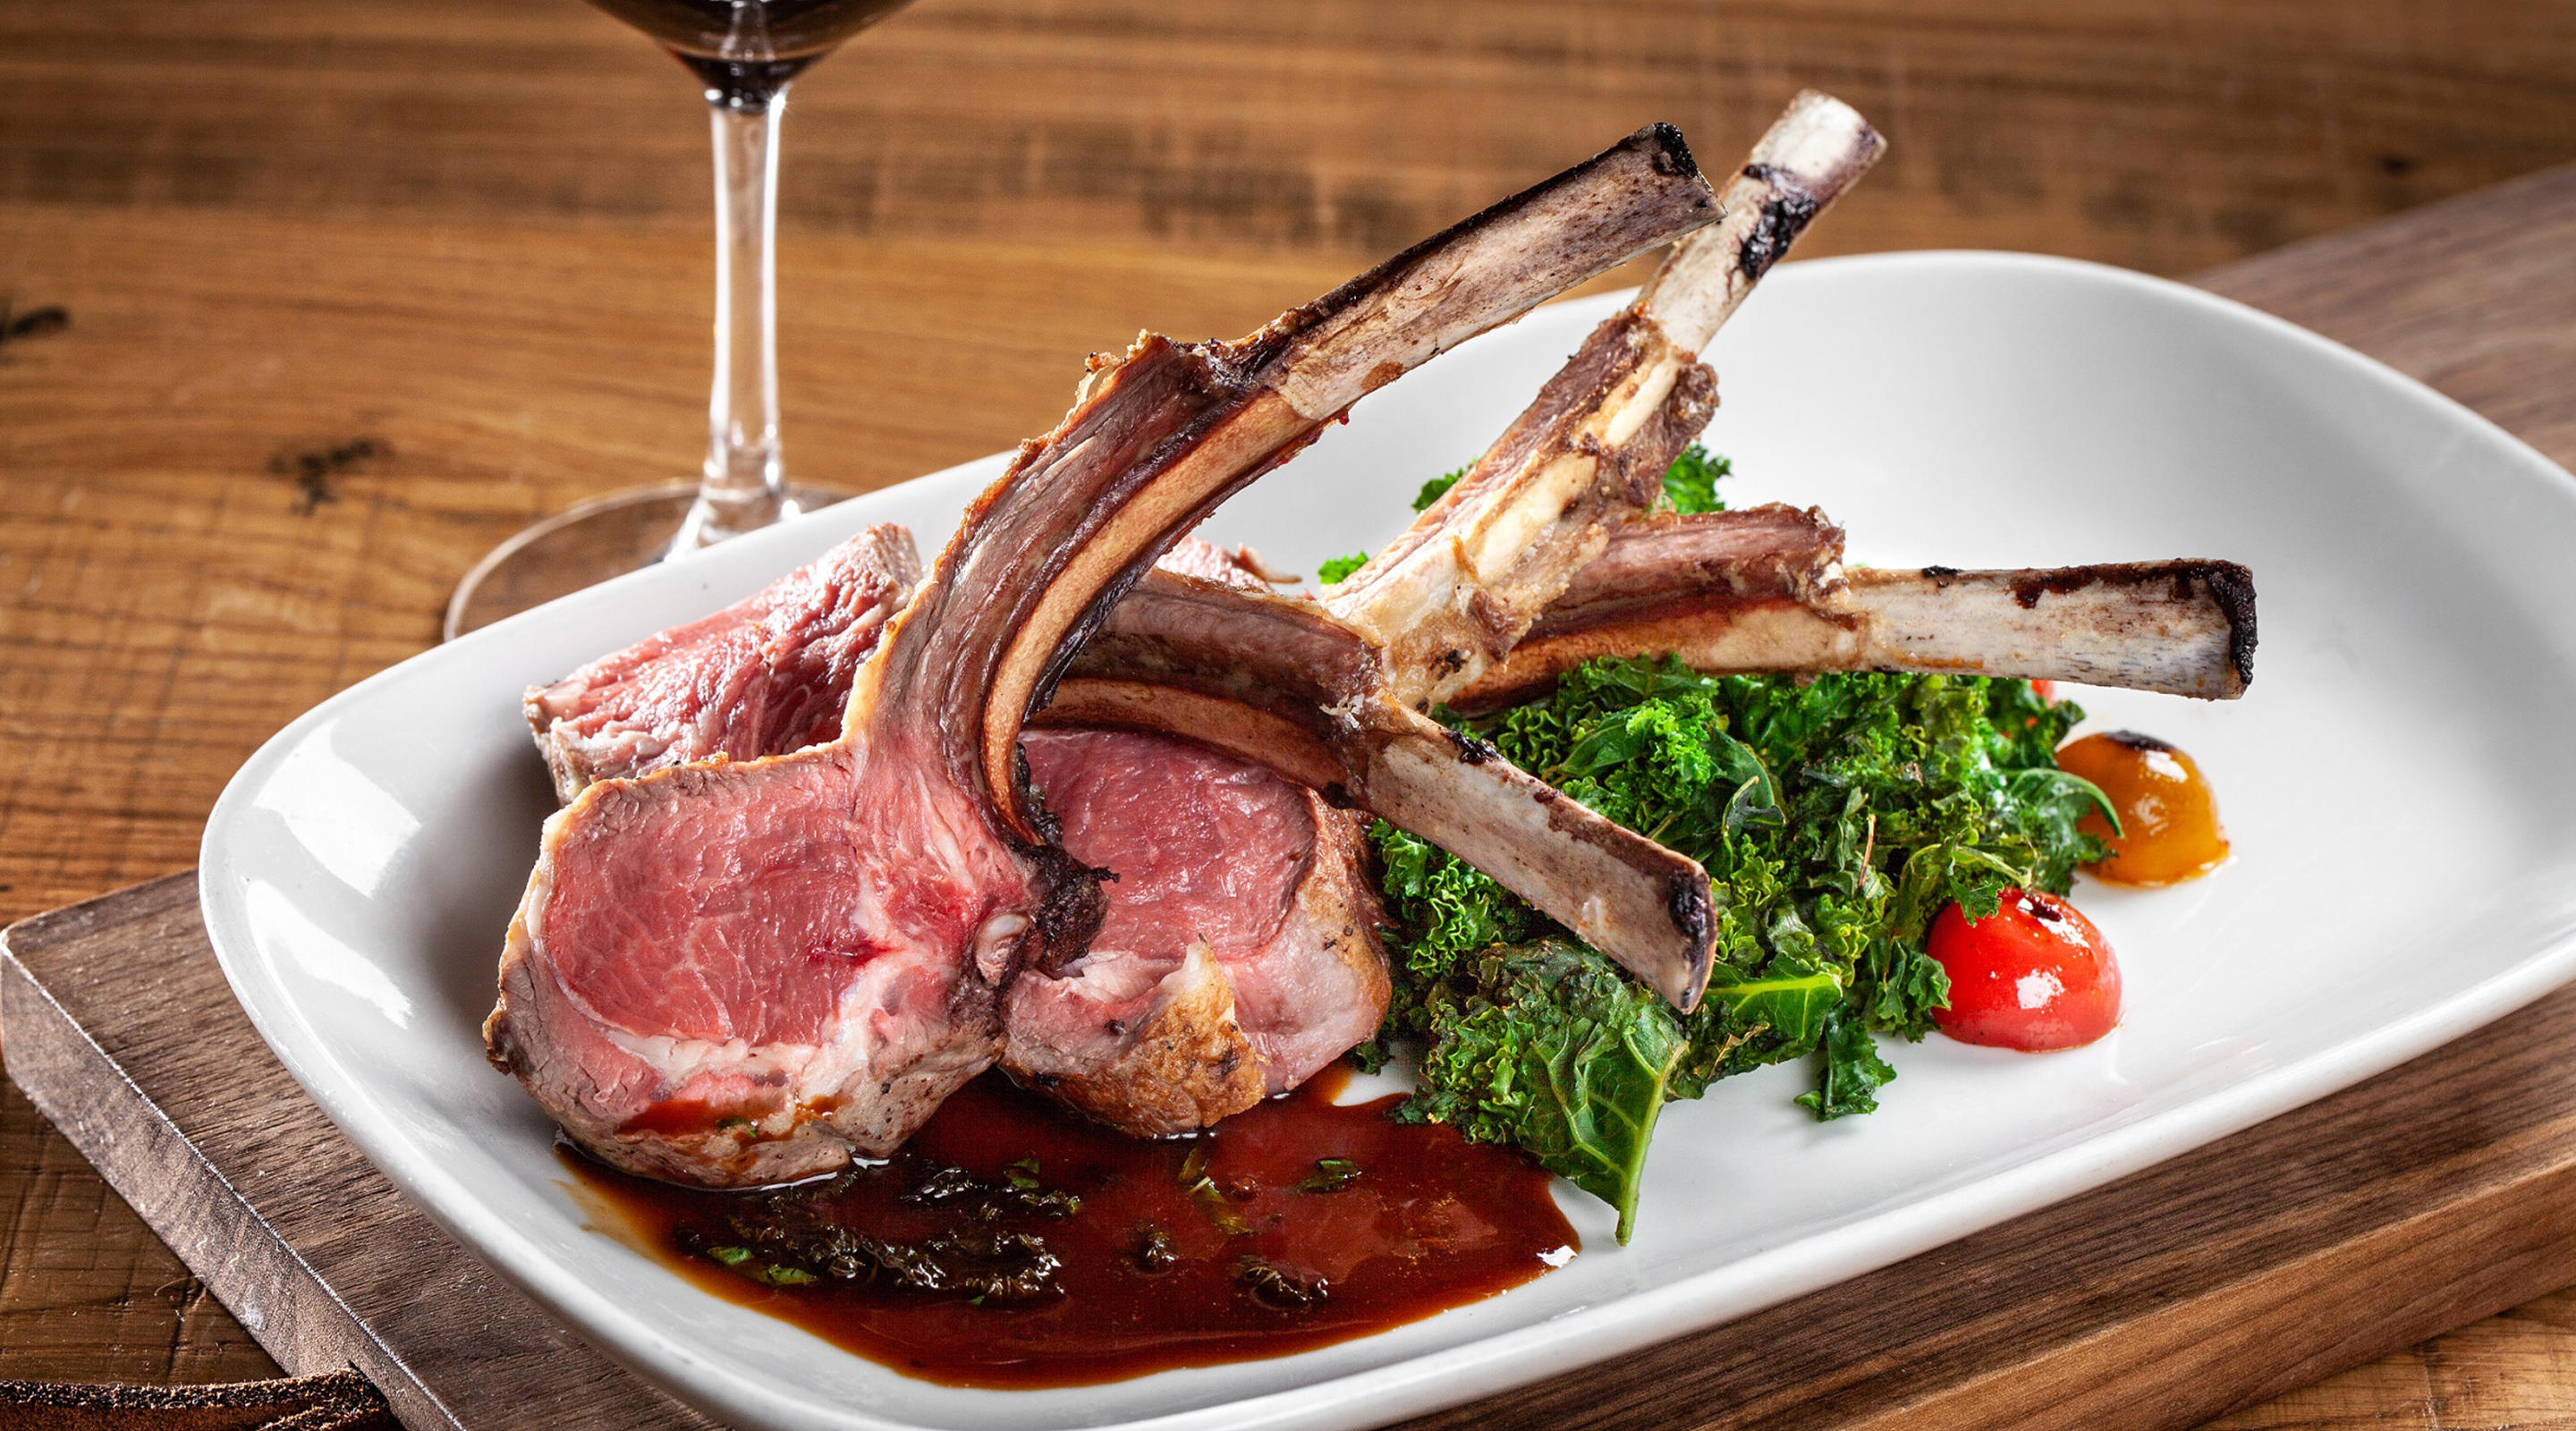 Rack of Lamb with braised kale, cherry tomatoes, mint.